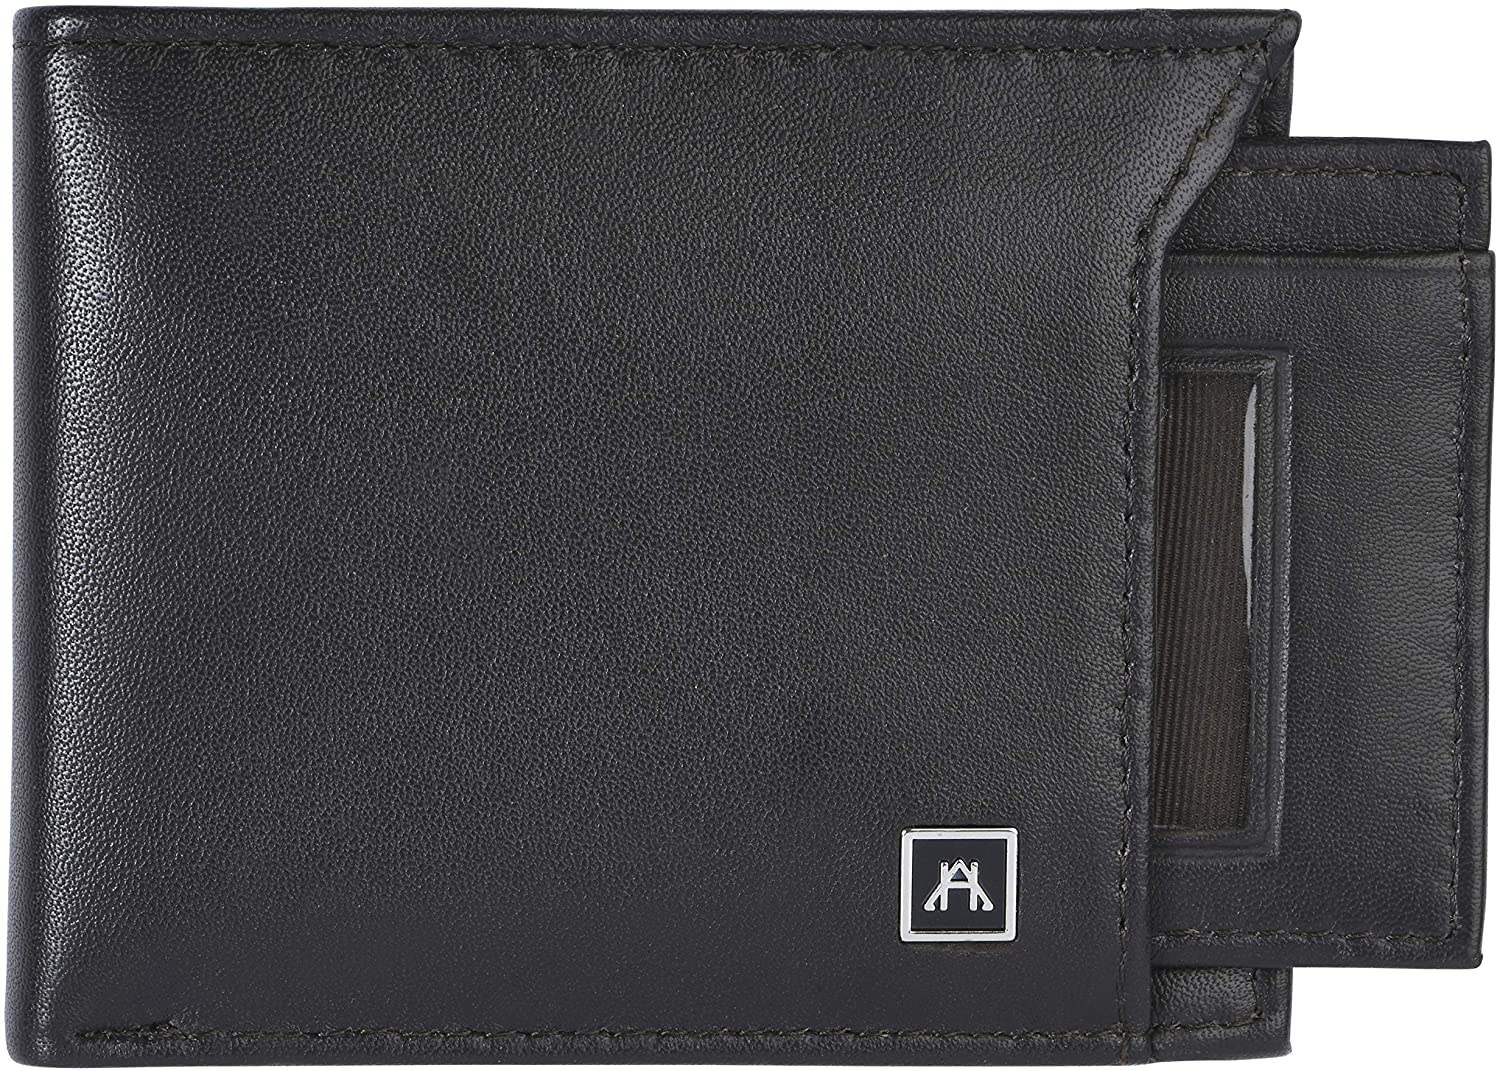 A&H Leather Goods RFID Men's Removable ID Bifold Wallet Full Grain Leather